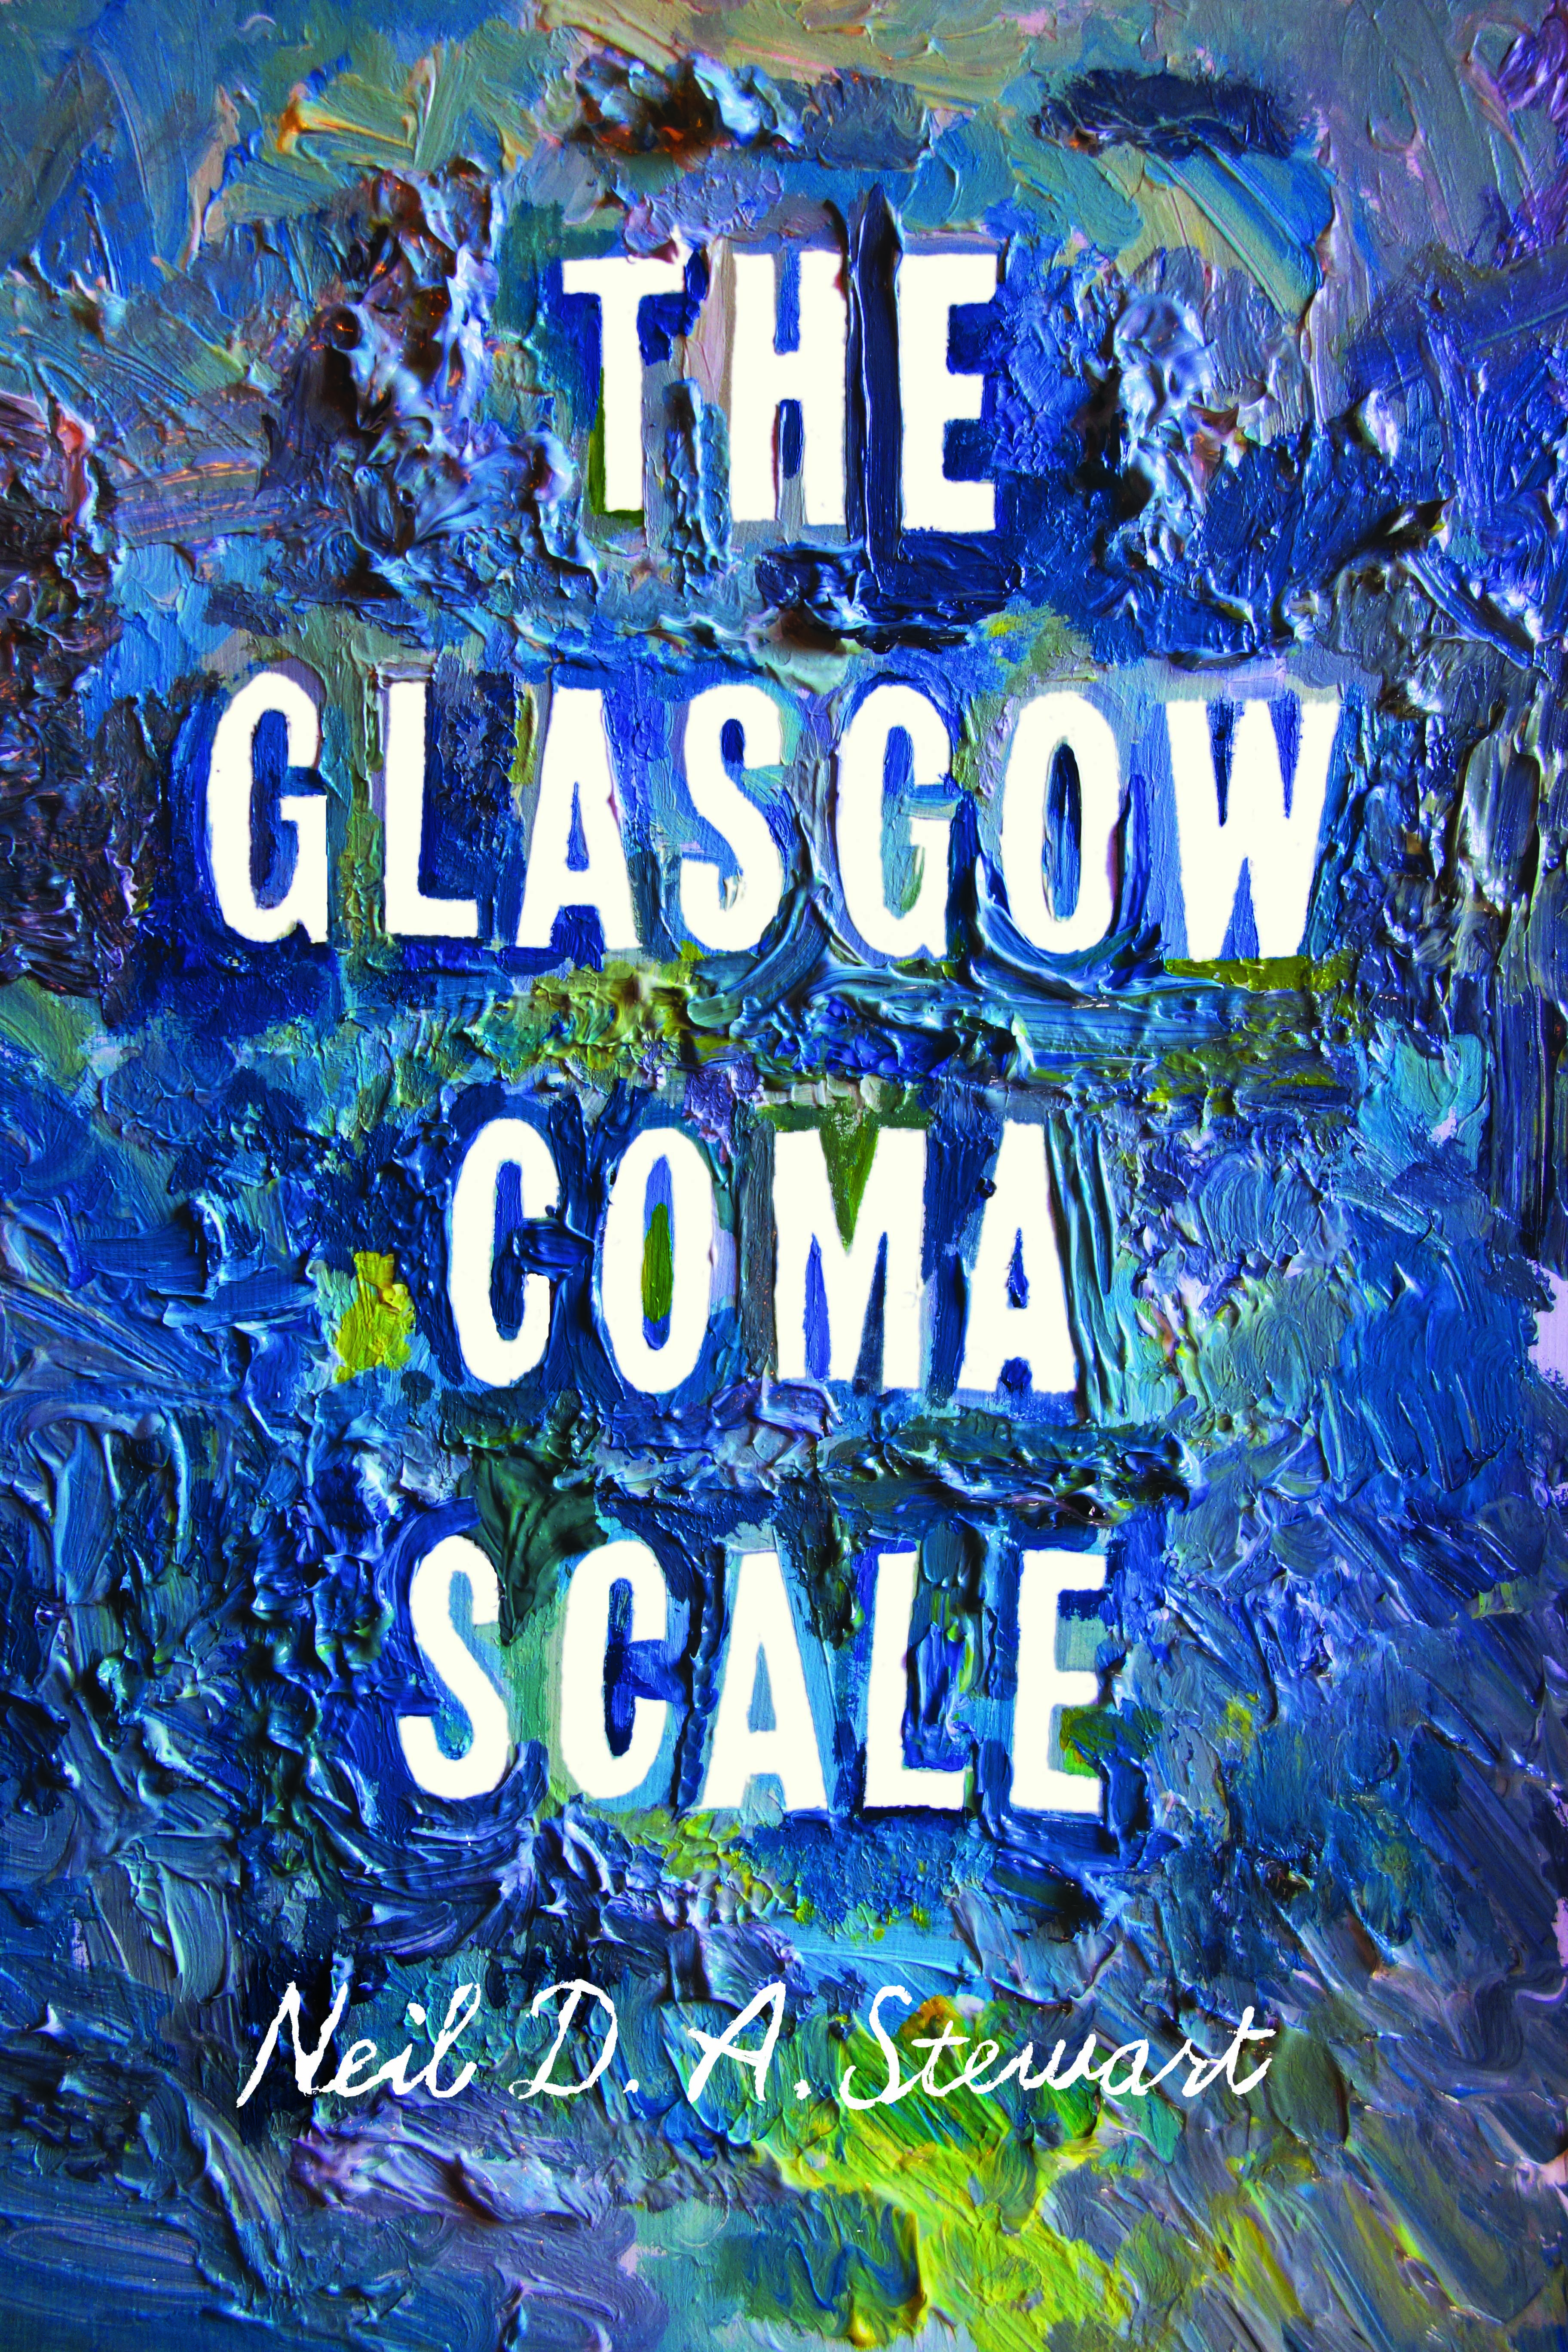 the glasgow a scale